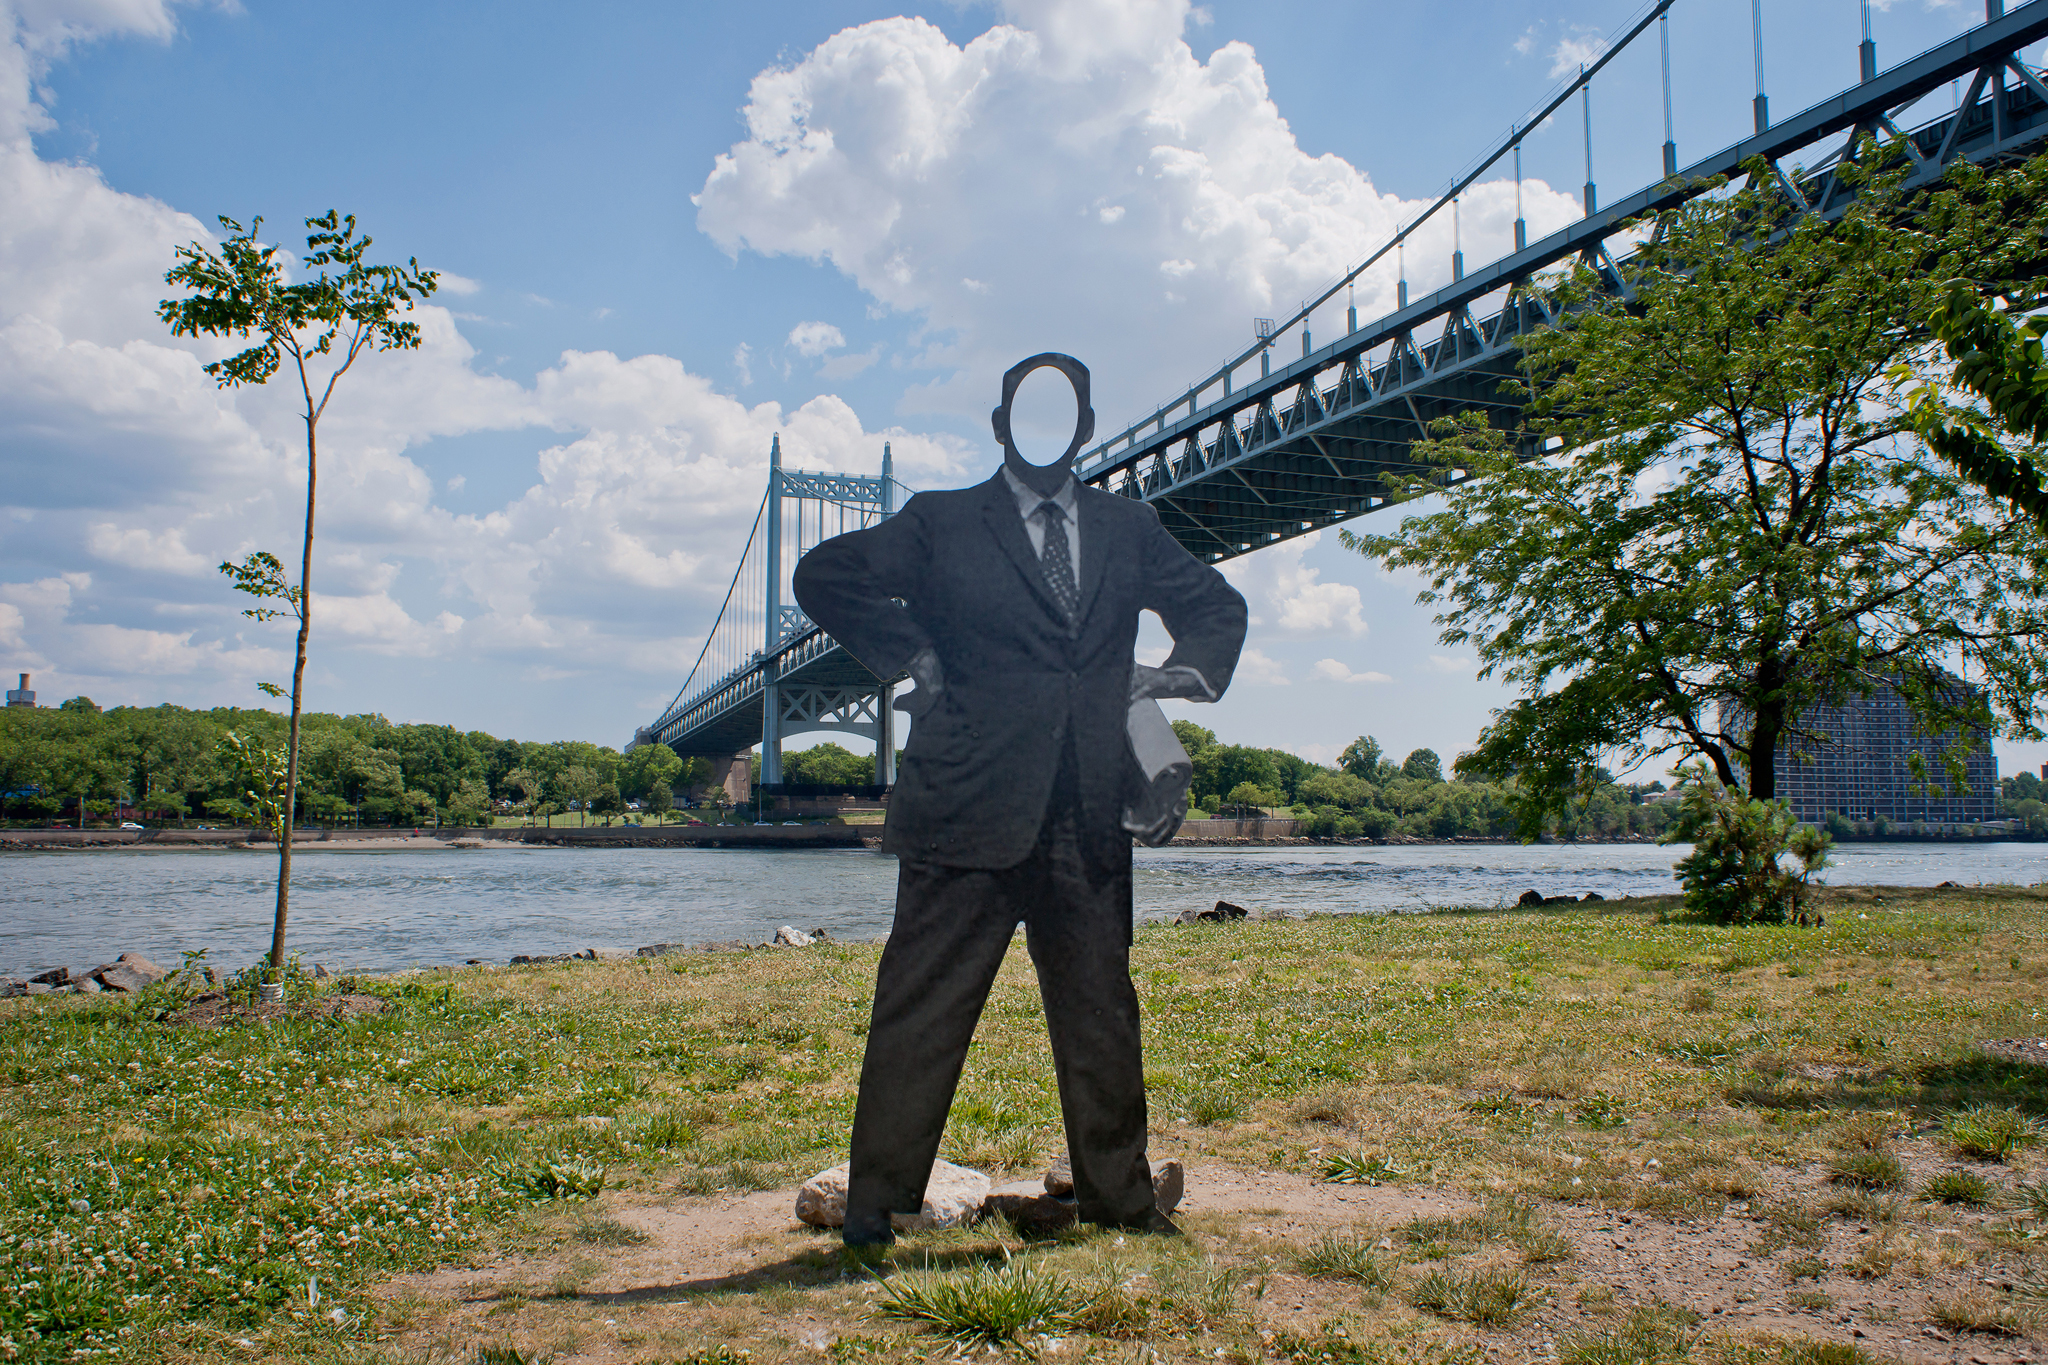 """Flow .12"": Nathan Gwynne, Famous Faces of Randall's IslandGwynne's aluminum cutout figures depict personages associated with the history of Randalls Island, including this one of Robert Moses, New York's imperious Parks Commissioner during the city's m"